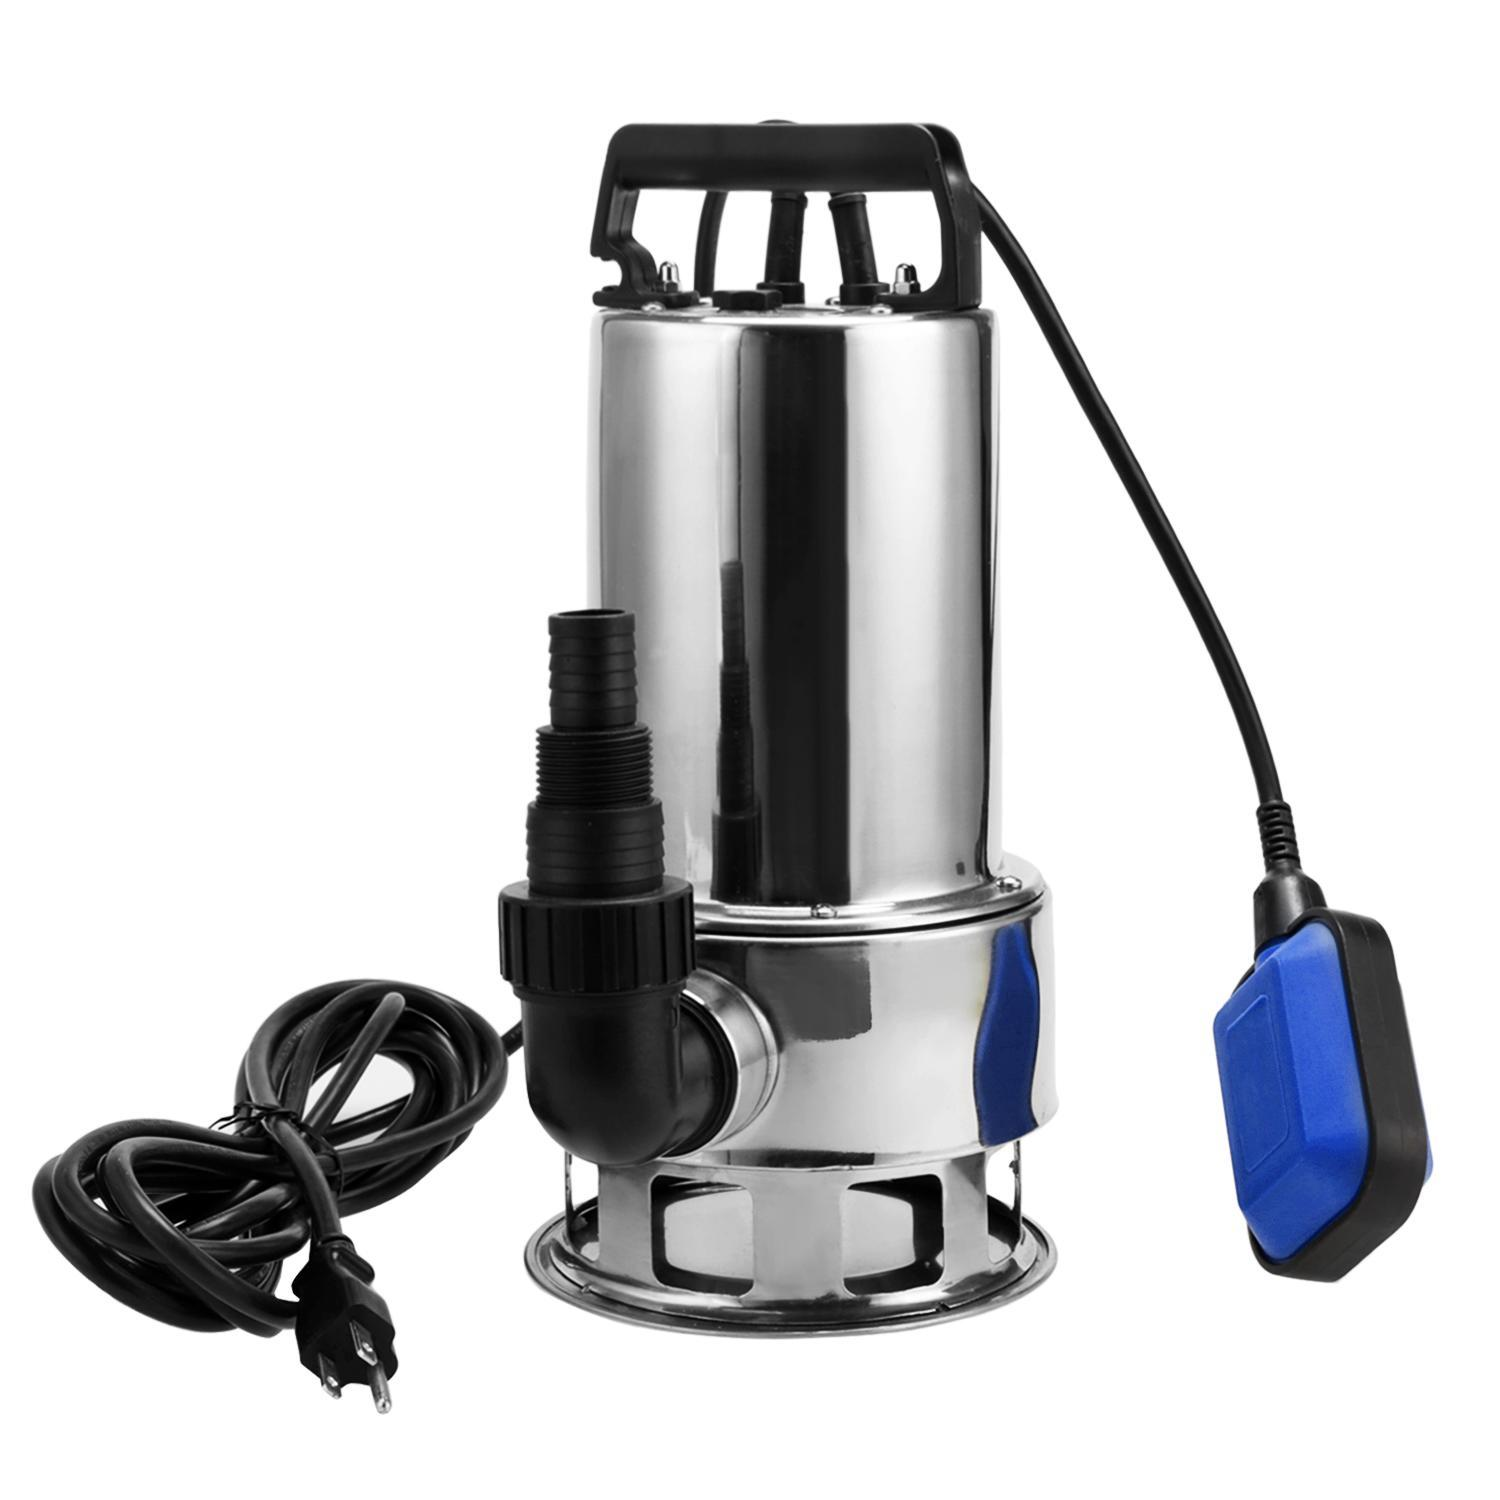 hight resolution of 1 5 hp stainless steel submersible sump pump dirty clean water pump w 15ft cable and float switch btc walmart com